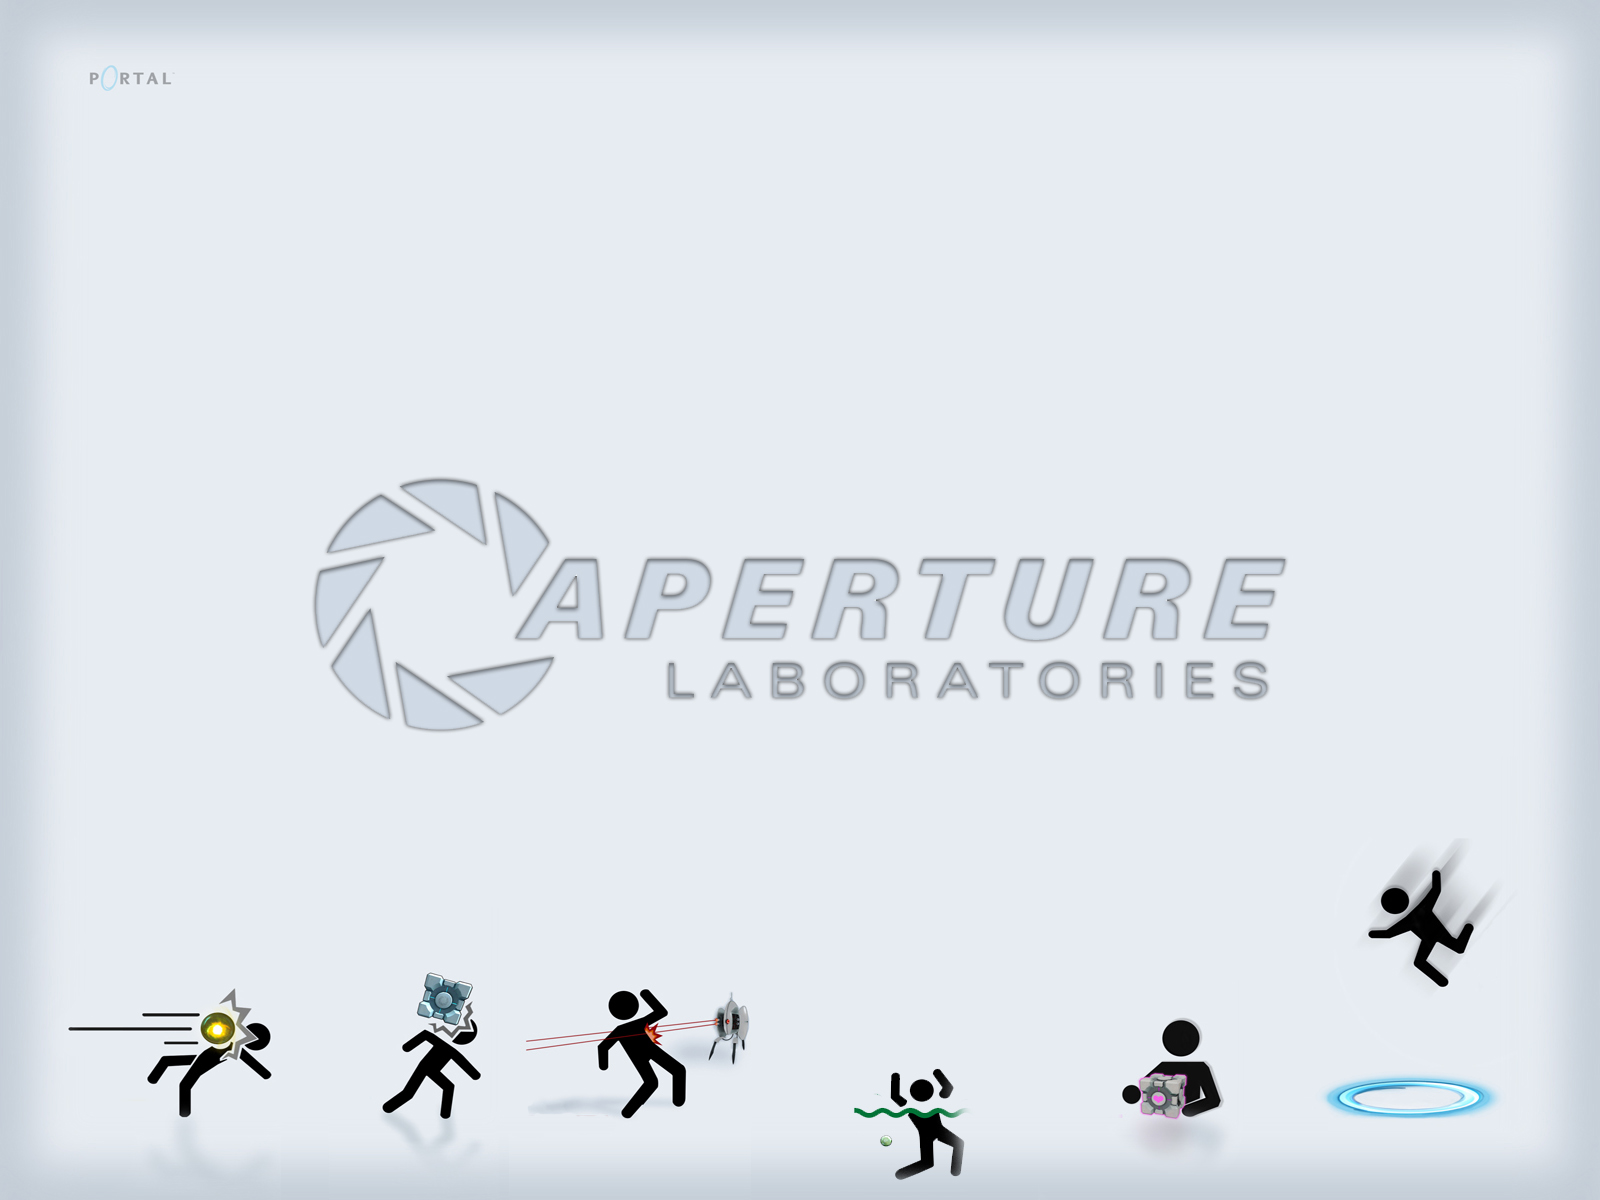 portal - the game images aperture laboratories hd wallpaper and